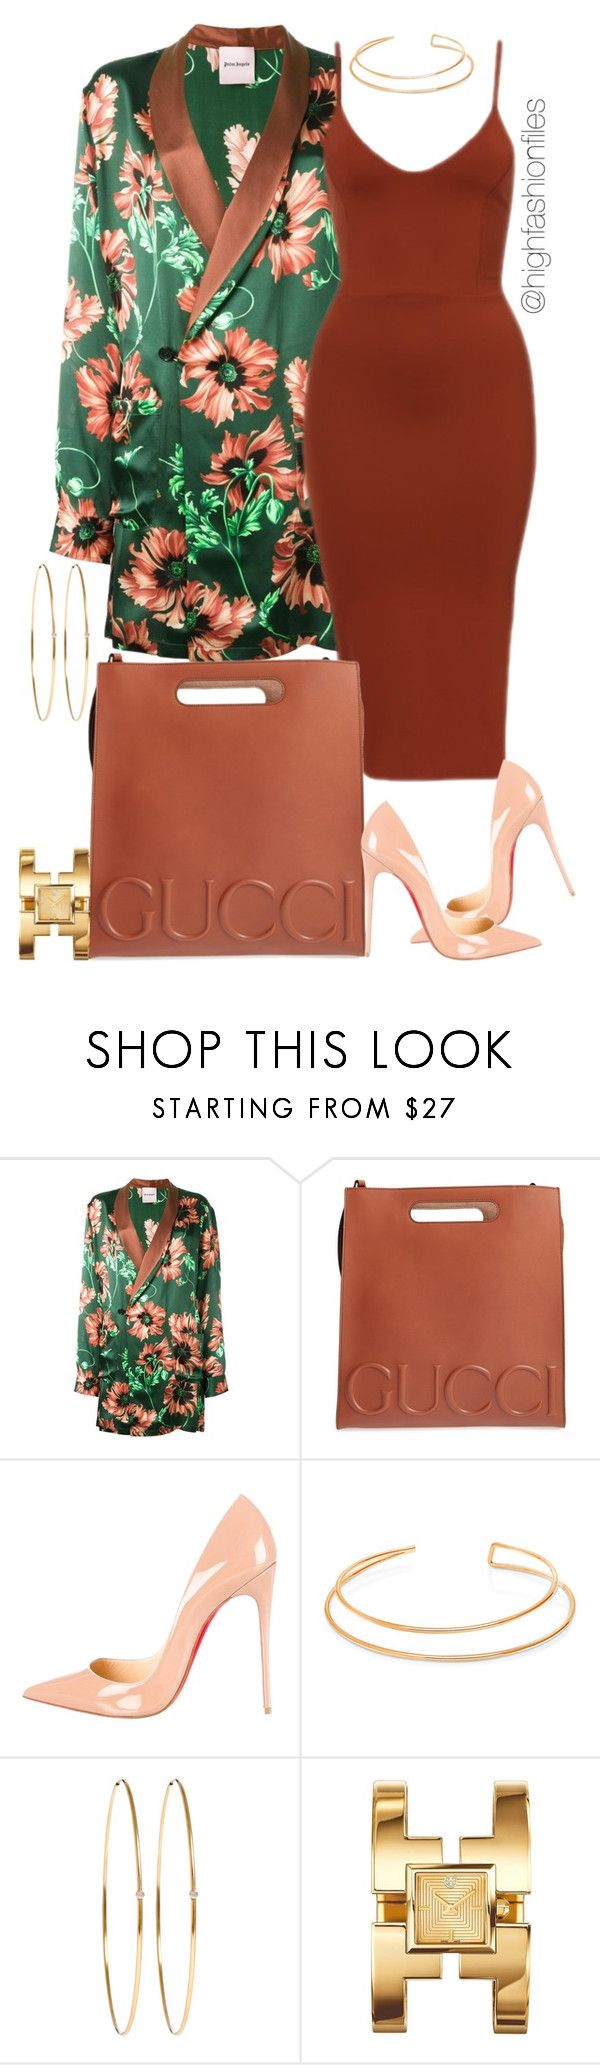 """Untitled #2743"" by highfashionfiles ❤ liked on Polyvore featuring Palm Angels, Gucci, Christian Louboutin, BERRICLE, Jennifer Meyer Jewelry and Tory Burch"